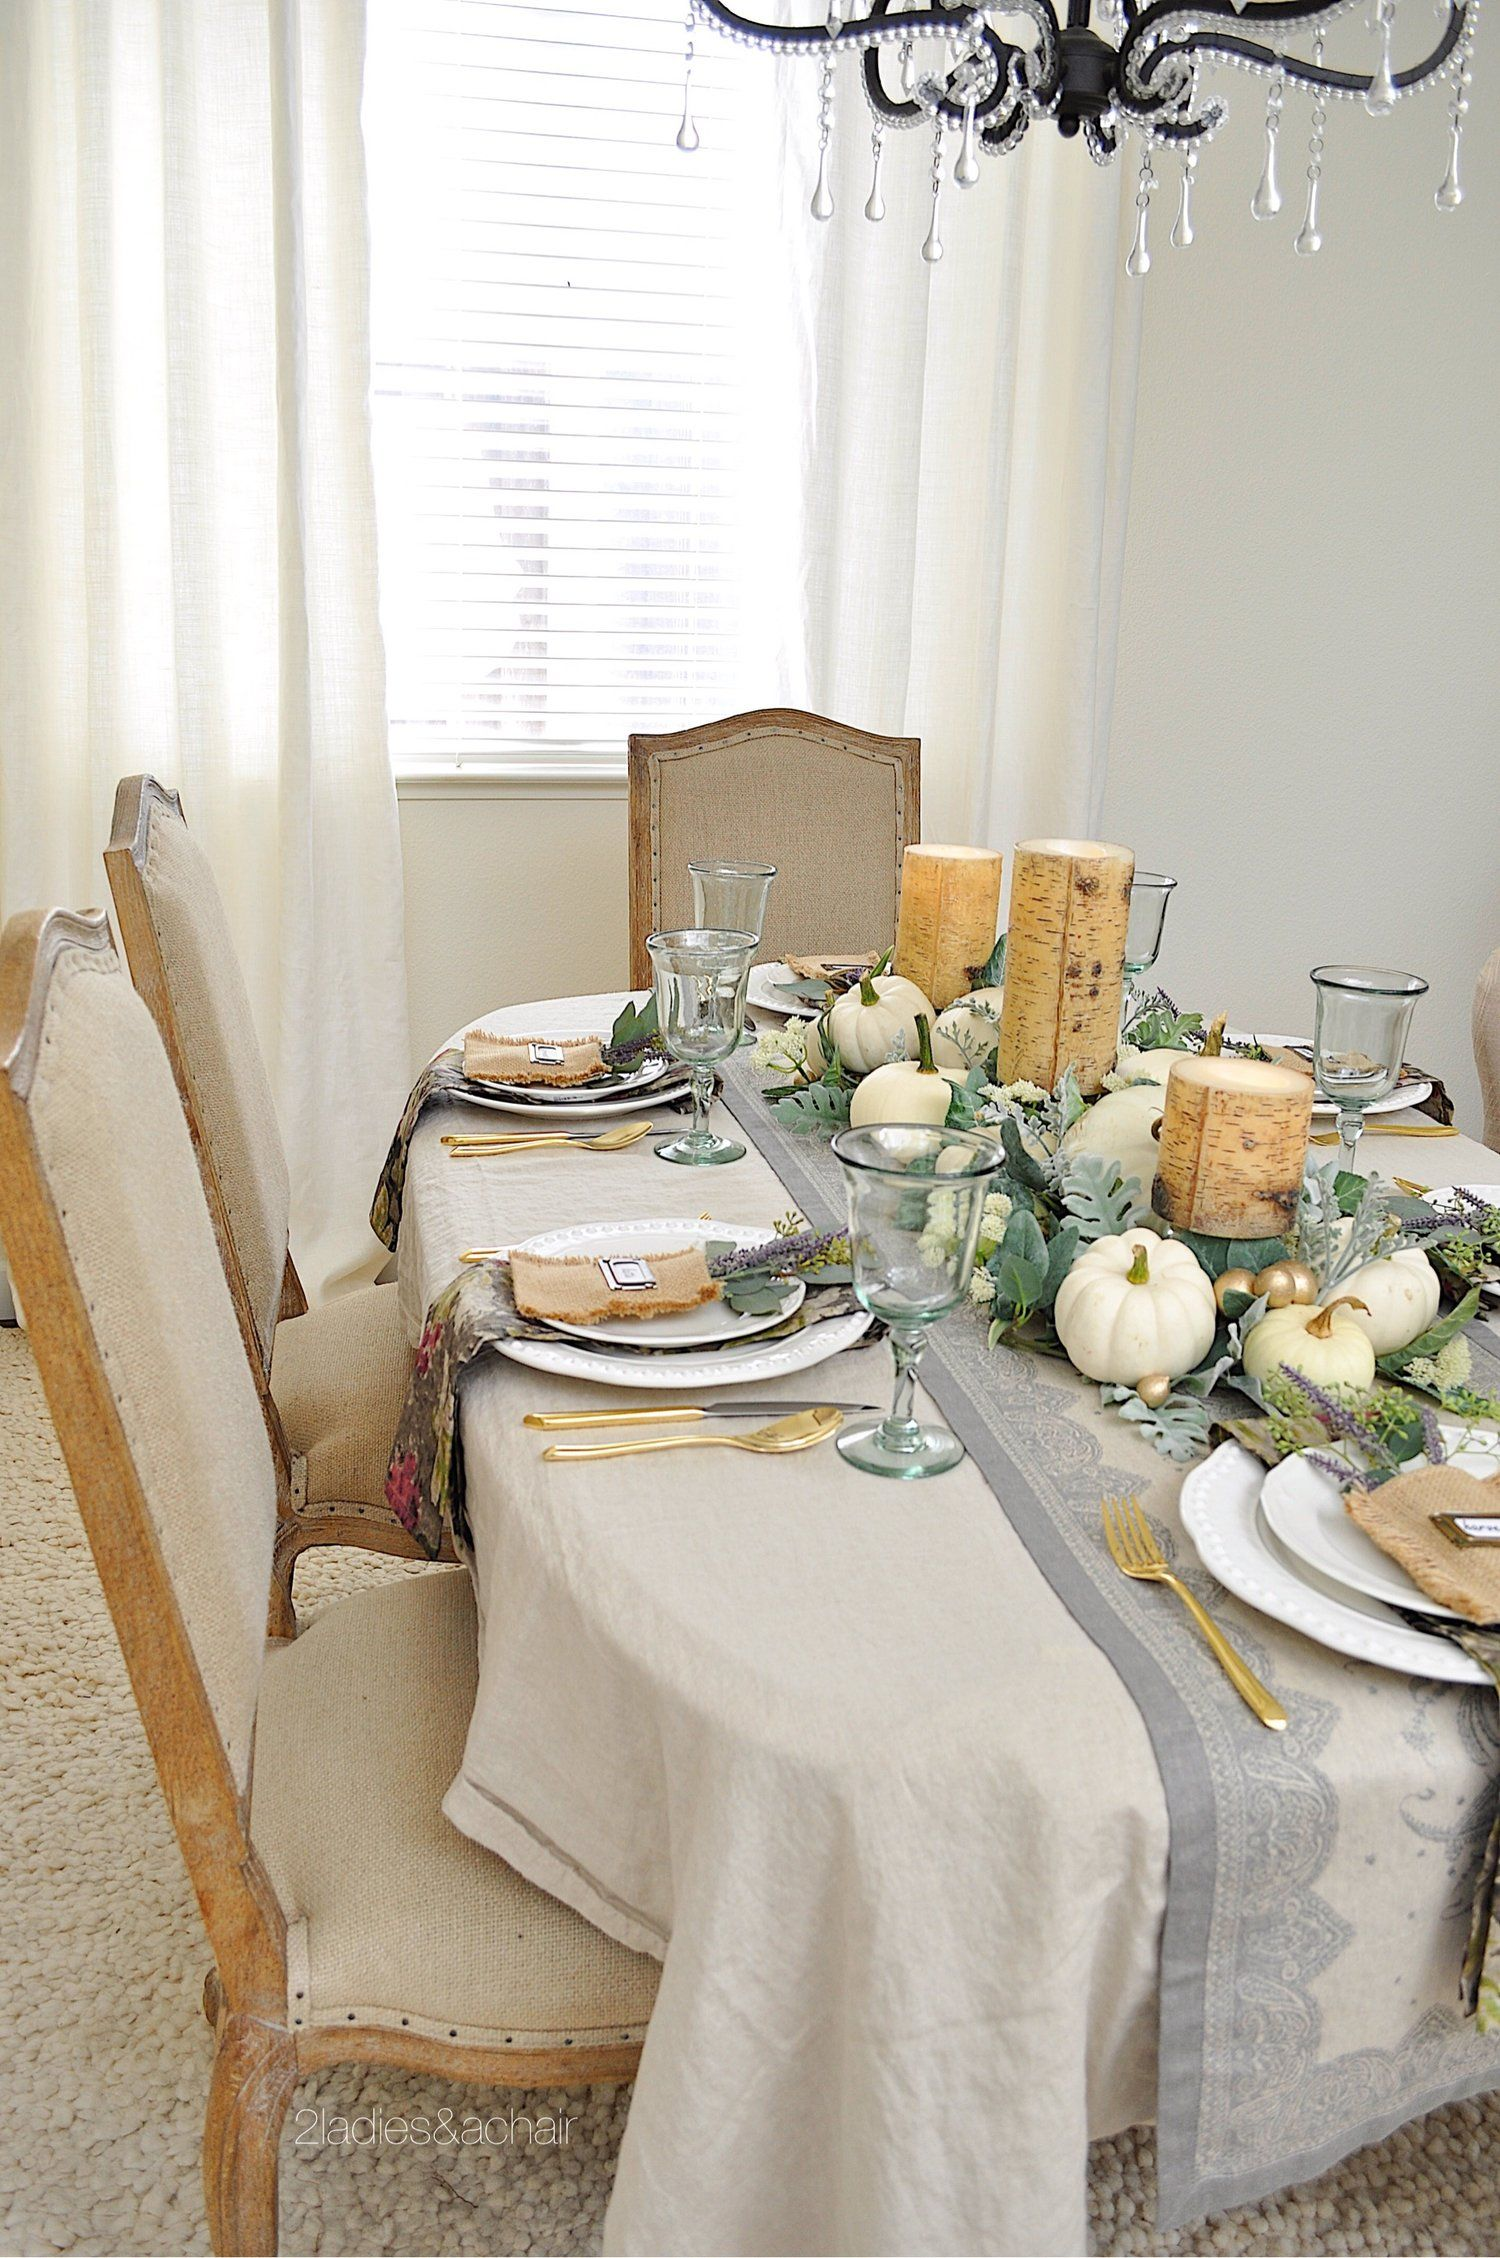 A Simple Beautiful Way To Decorate Your Dining Table For Fall 2 Ladies A Chair Dining Table Decor Fall Dining Table Simple Dining Table